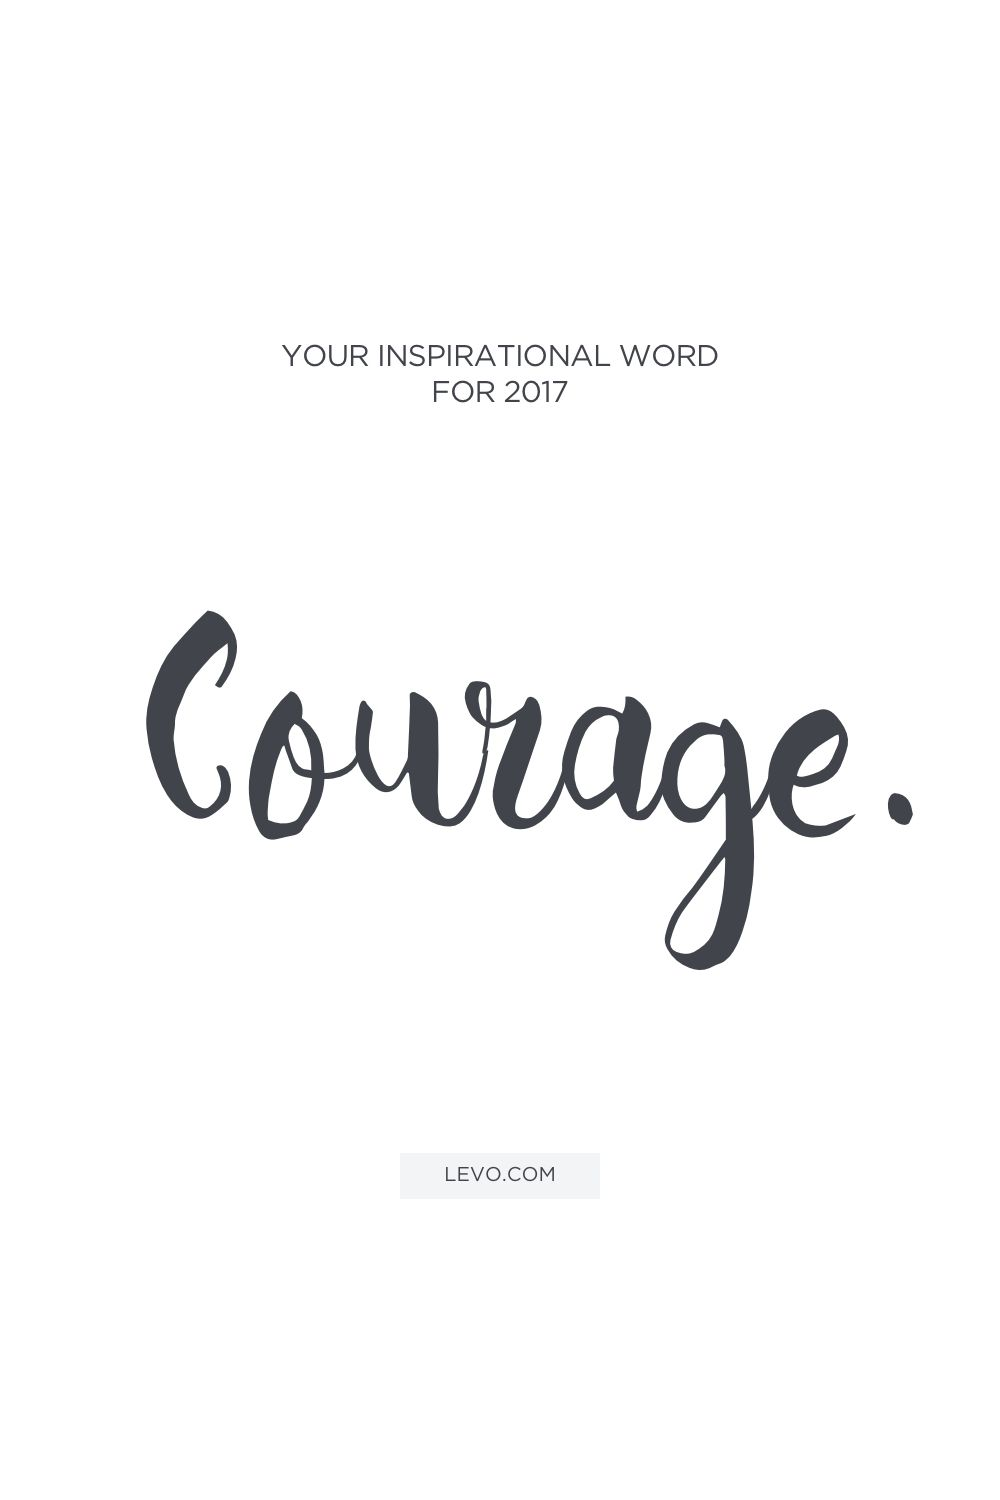 What Will Be Your Inspirational Word For 2017? personal